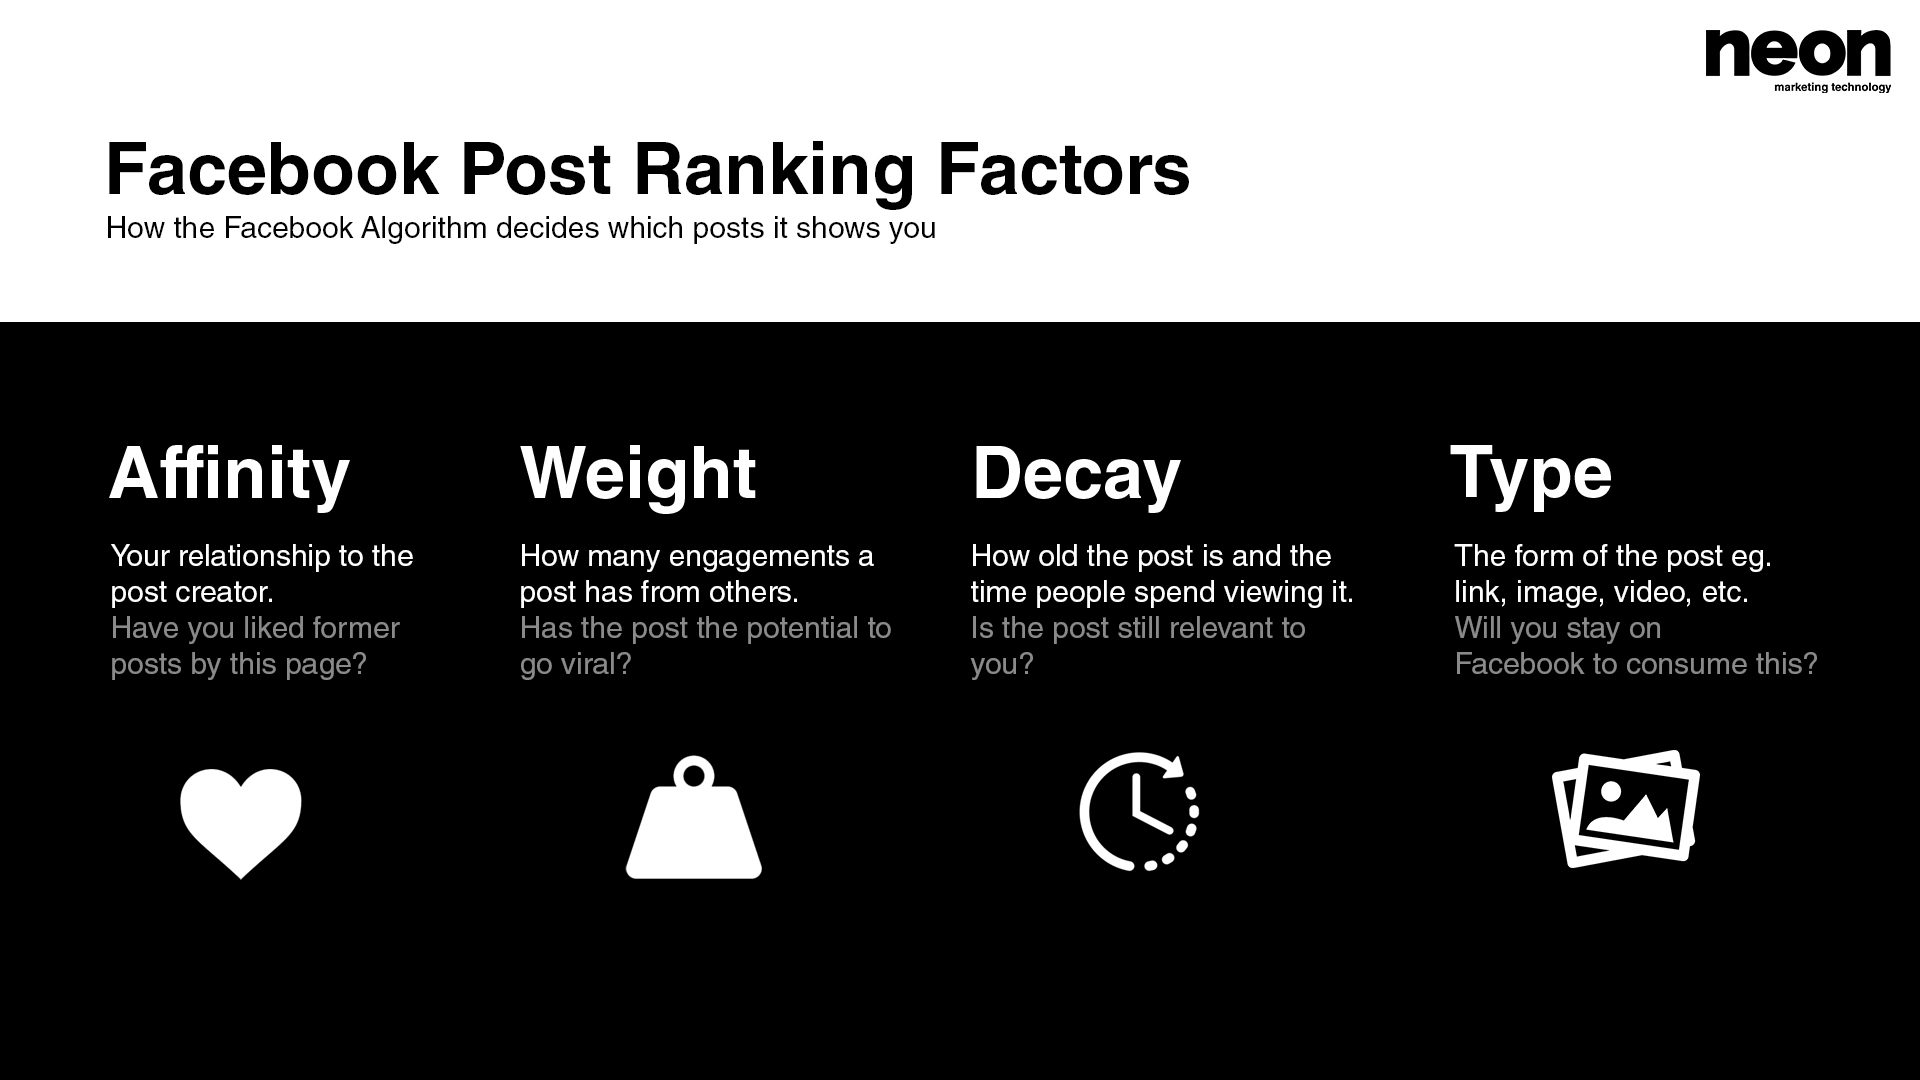 Facebook Post Ranking Factors